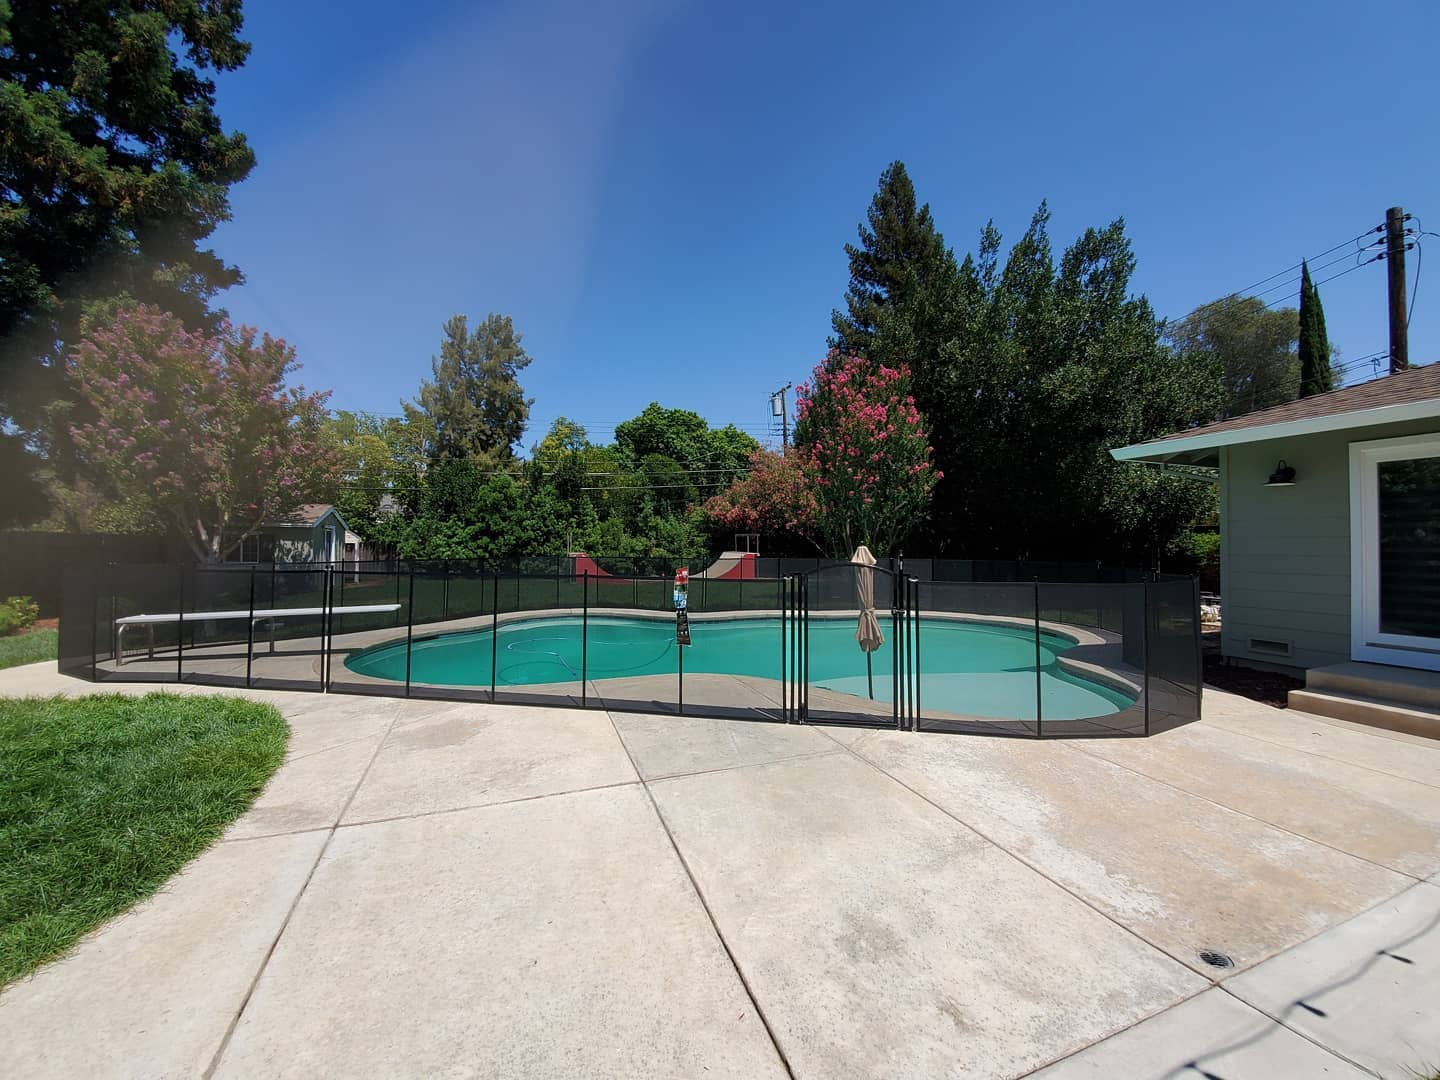 mesh pool fence installed in Stockton, CA